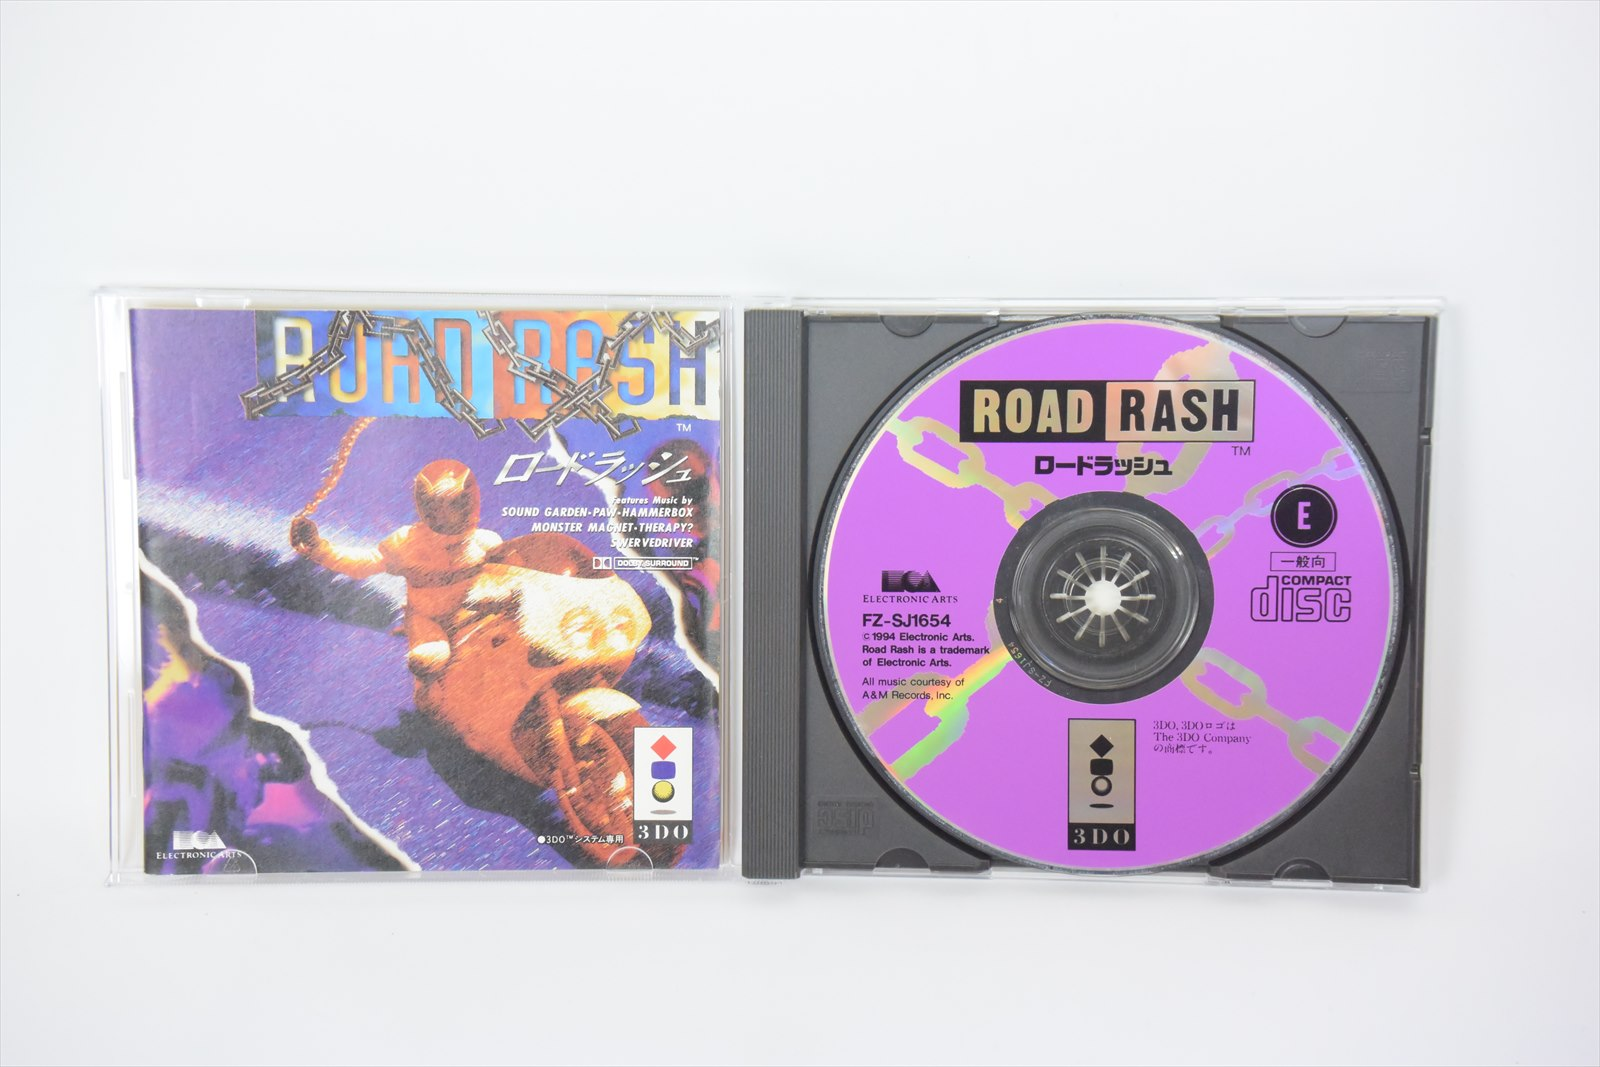 Details about ROAD RASH 3do Real Panasonic Import Japan Game 3d